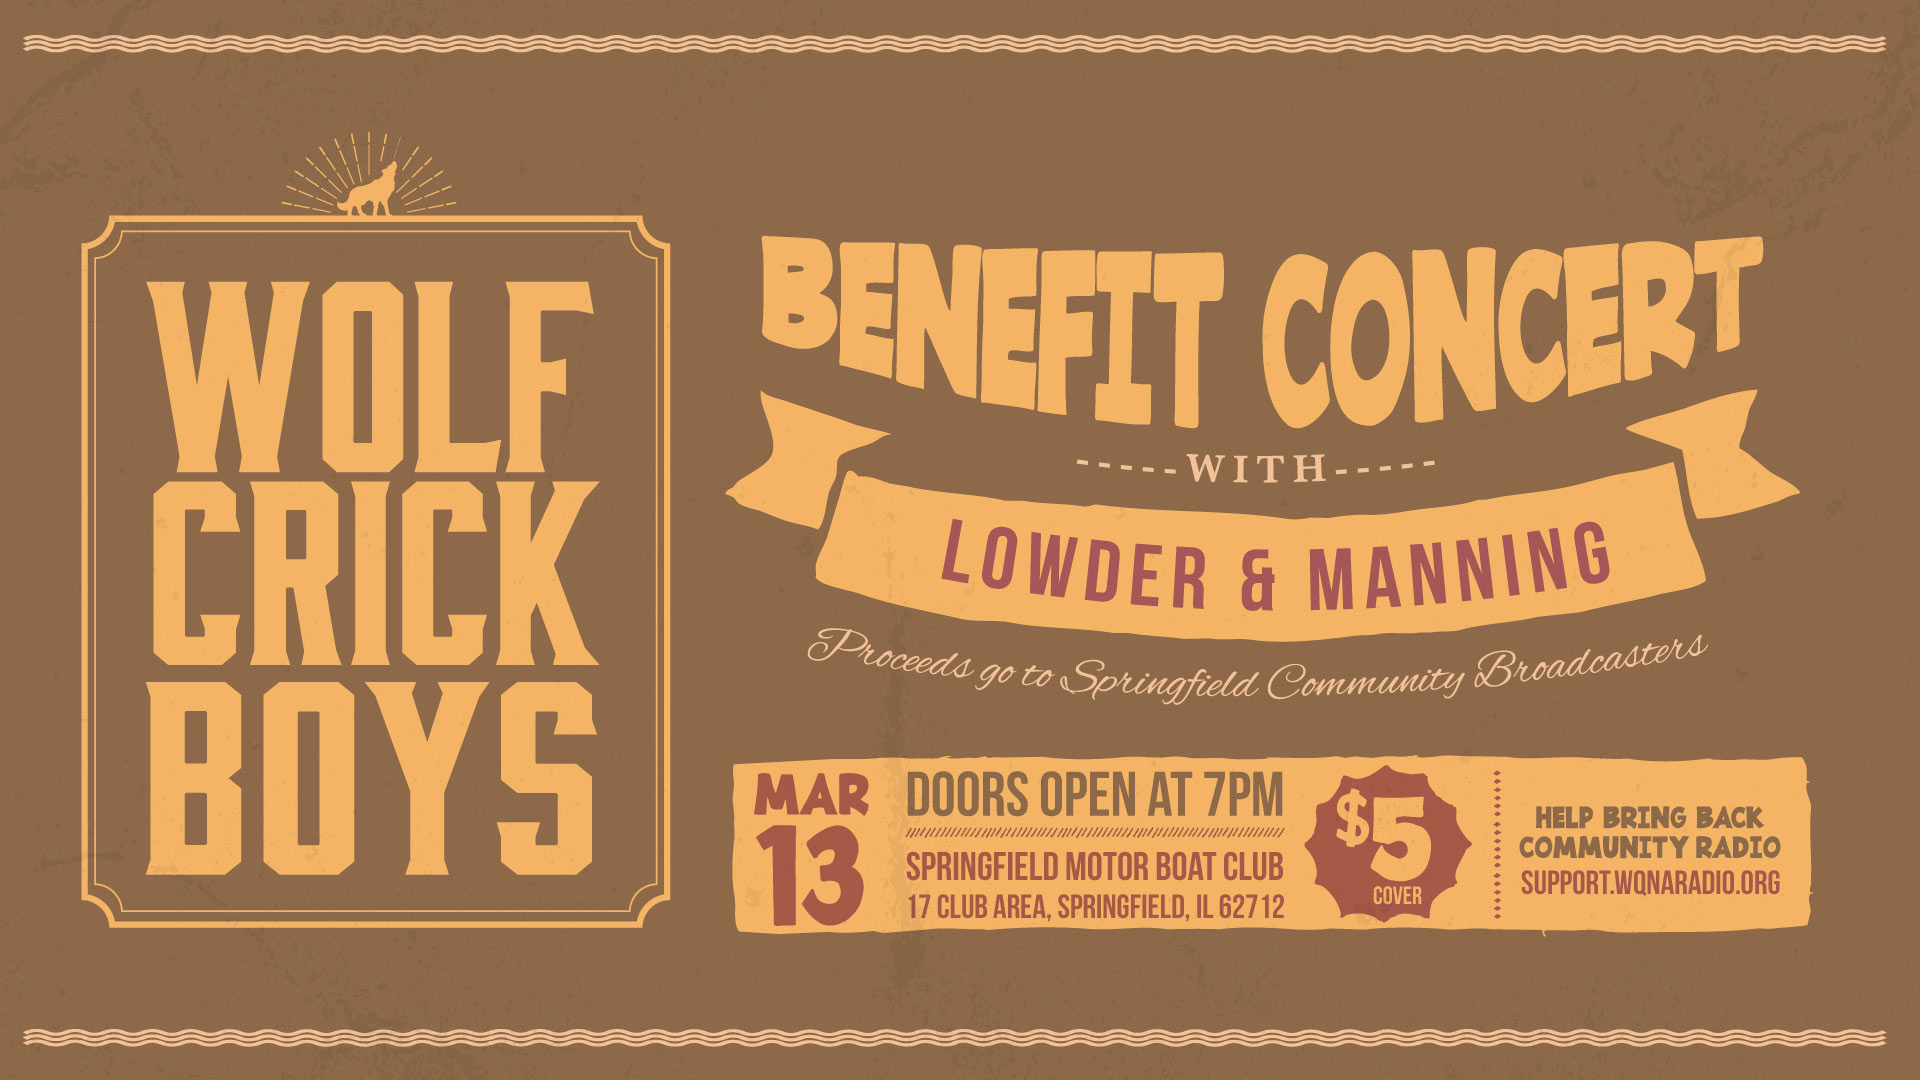 Wolf Crick Boys benefit concert 7pm March 13